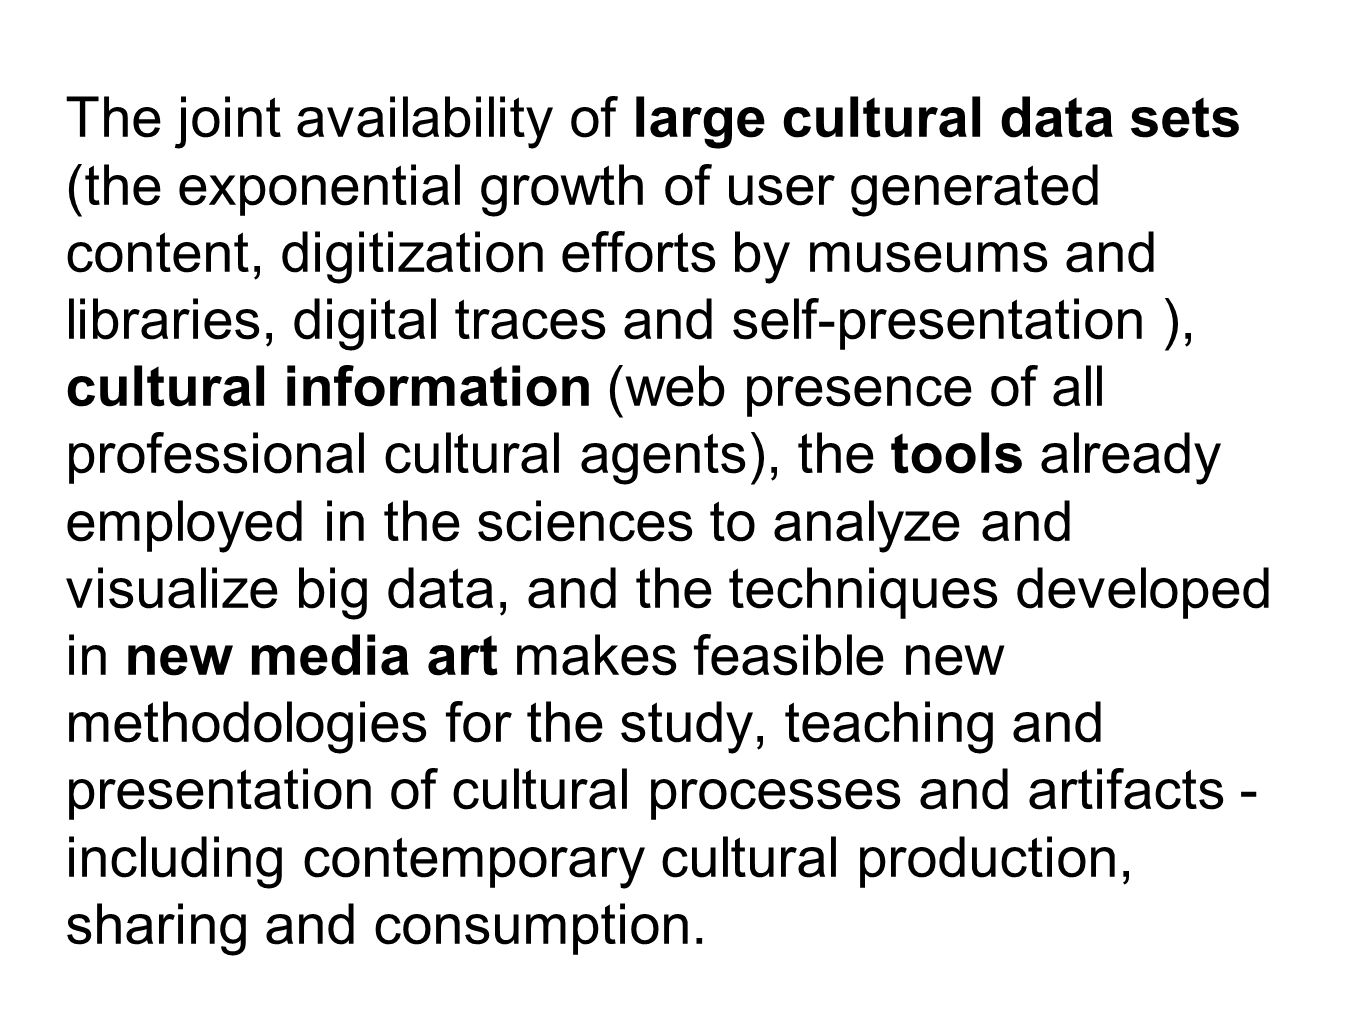 The joint availability of large cultural data sets (the exponential growth of user generated content, digitization efforts by museums and libraries, d